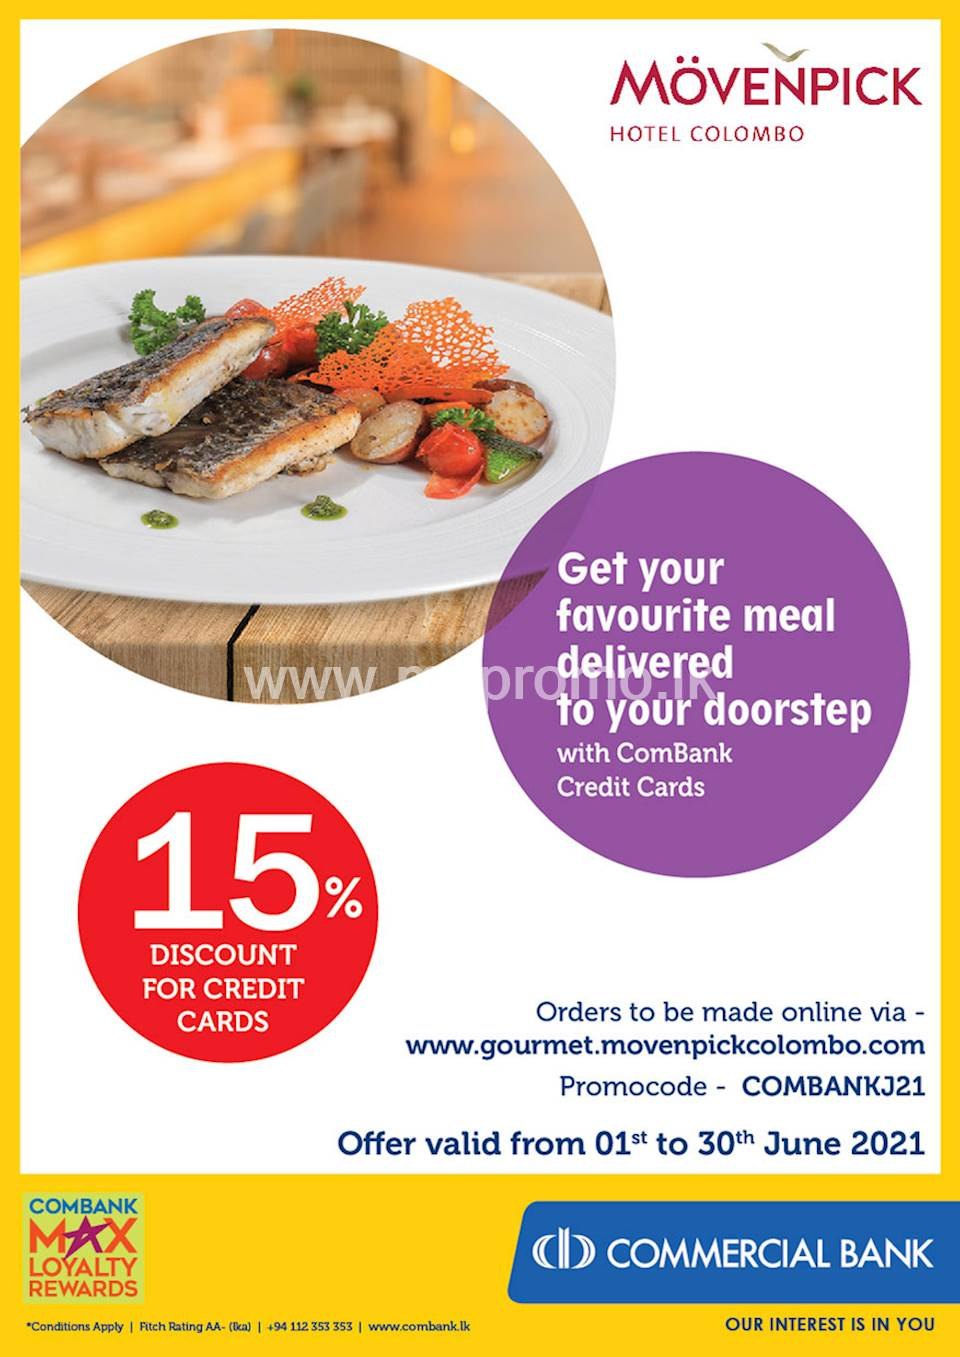 Get your favourite meal delivered to your doorstep with ComBank Credit Cards